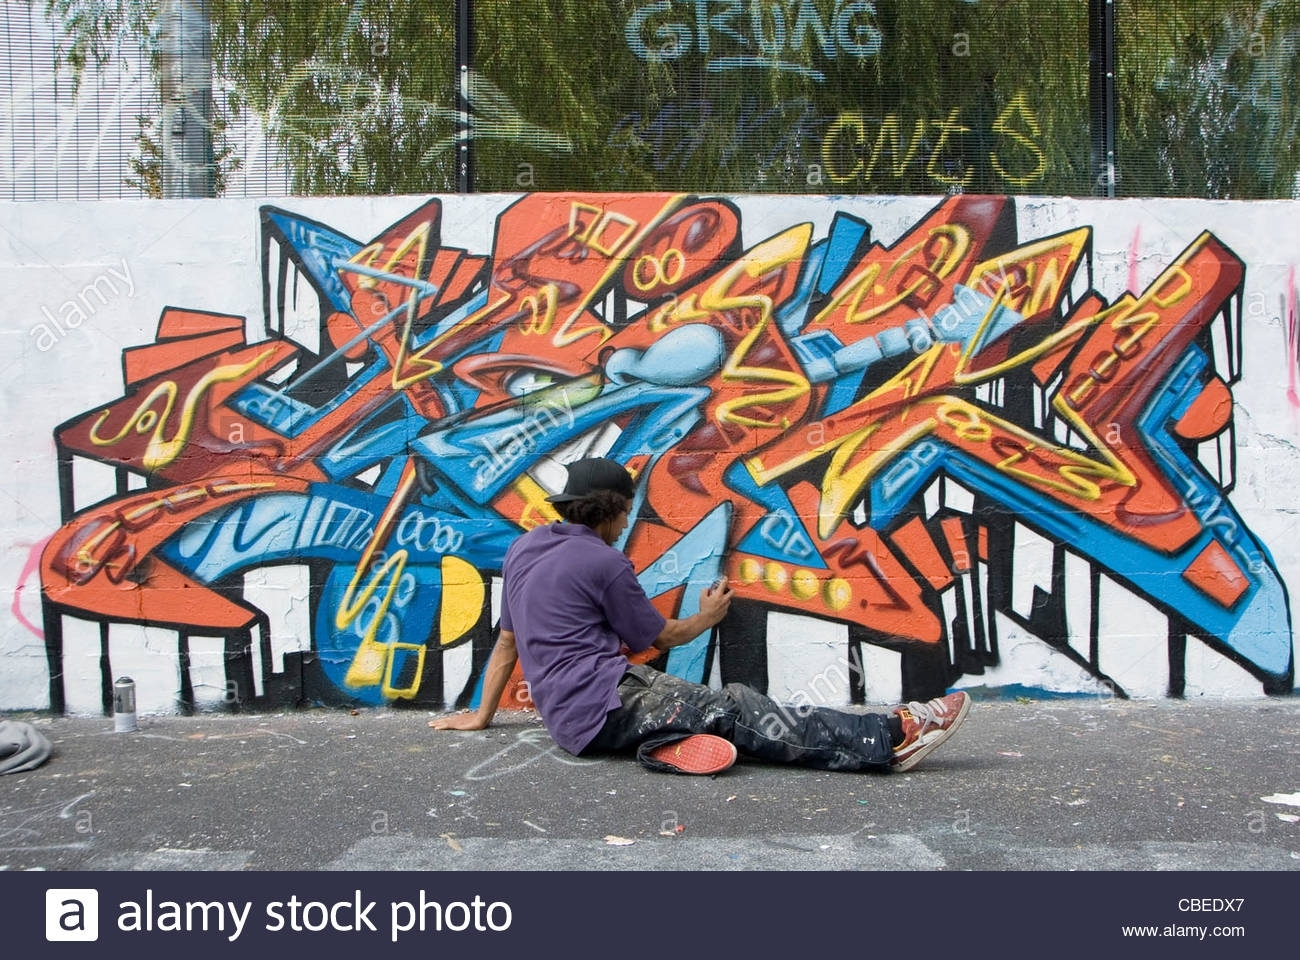 Teenage Boy Painting Abstract Graffiti Art Mural On Wall, From Intended For Latest Abstract Graffiti Wall Art (View 17 of 20)